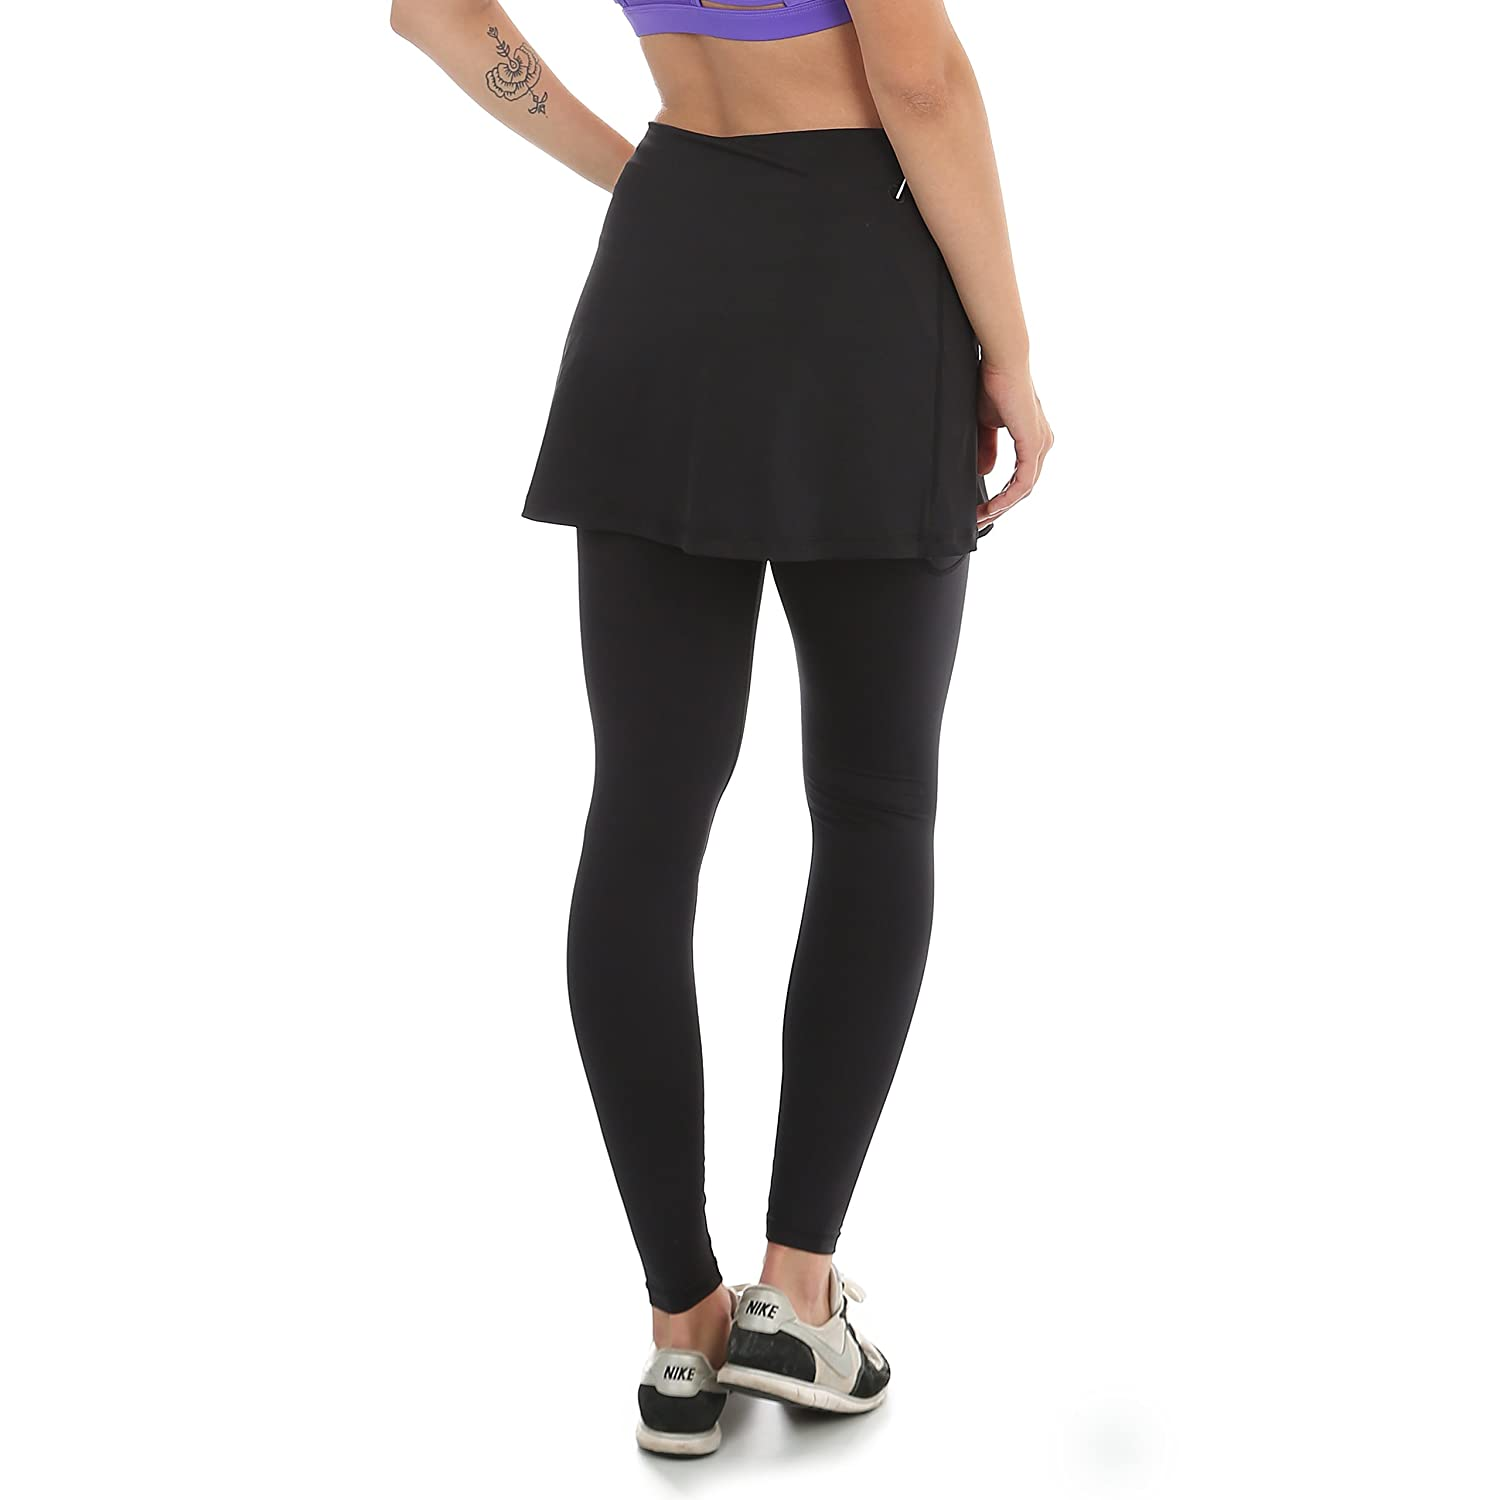 5a81319f134d47 Amazon.com: Sport-it Women's Leggings Skirt, Skirted Leggings, Active Skirt  with Pockets, Running Skort: Clothing